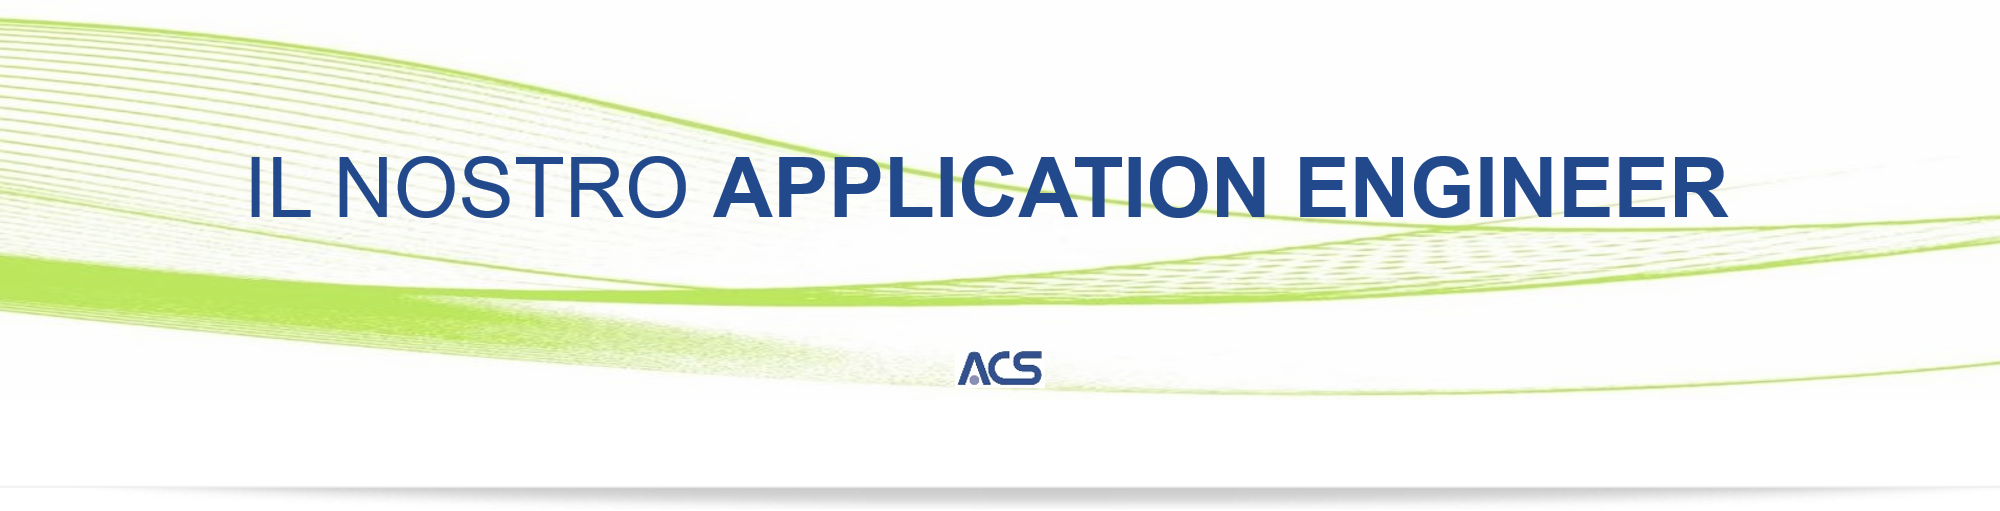 IT_Il nostro Application Engineer